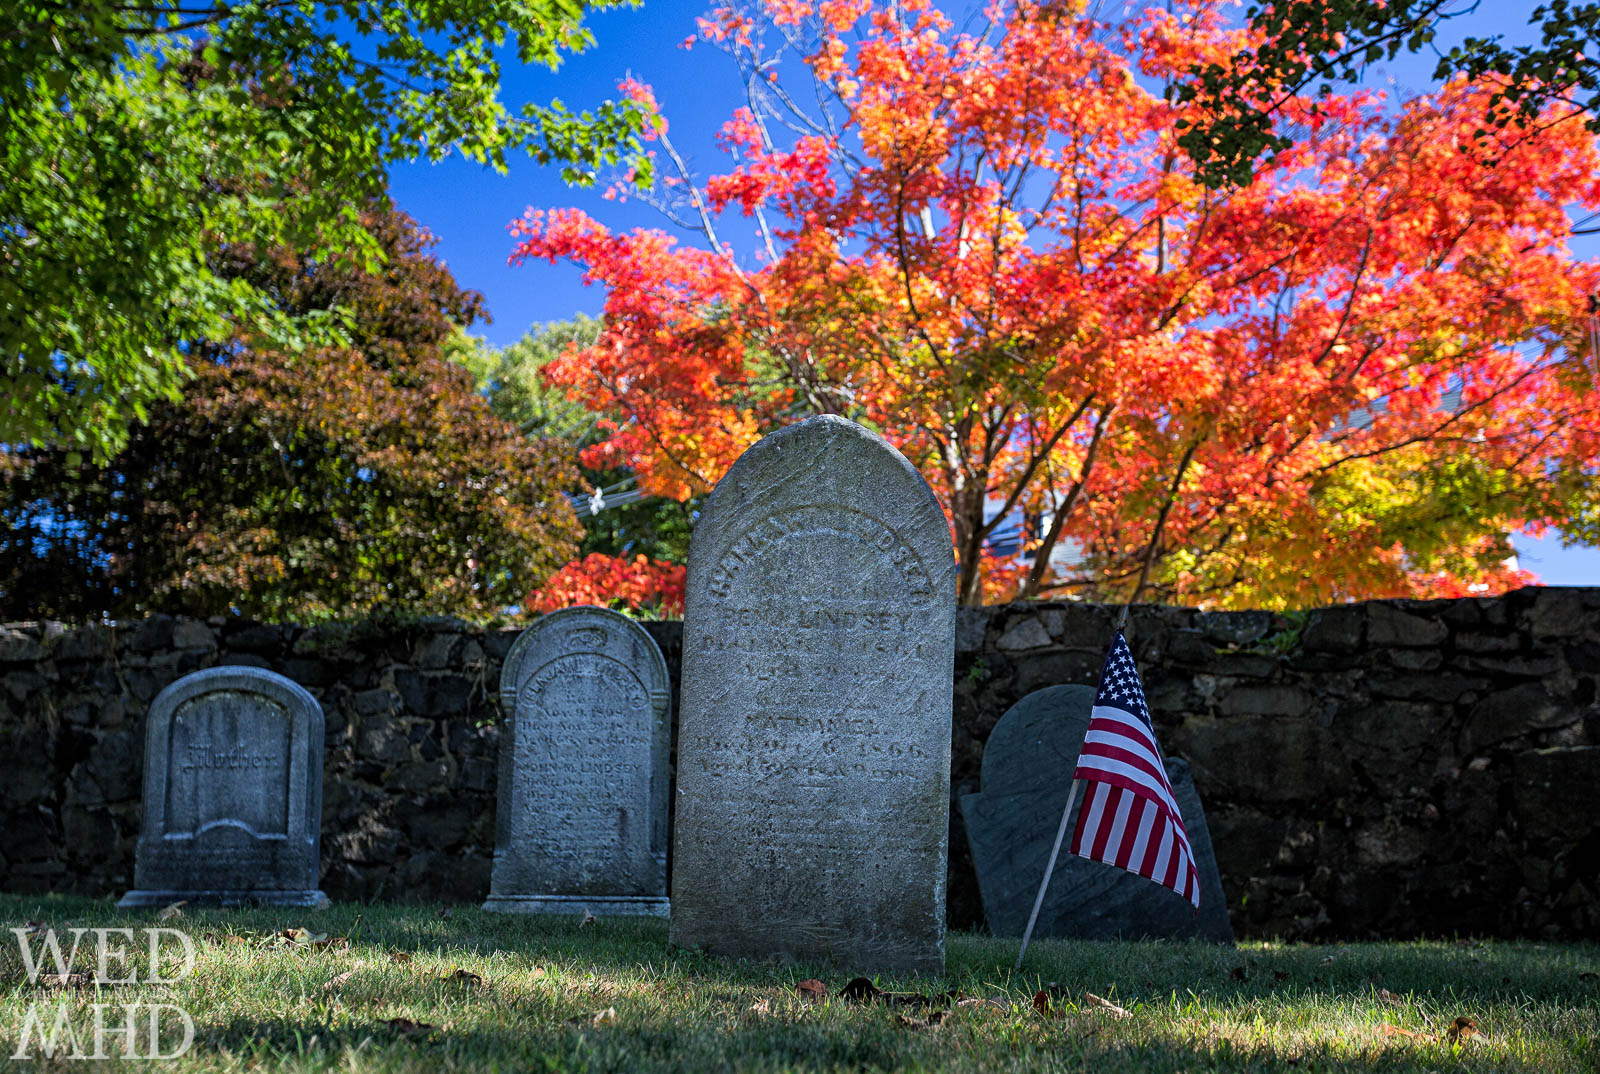 Gravestones under a Maple Tree